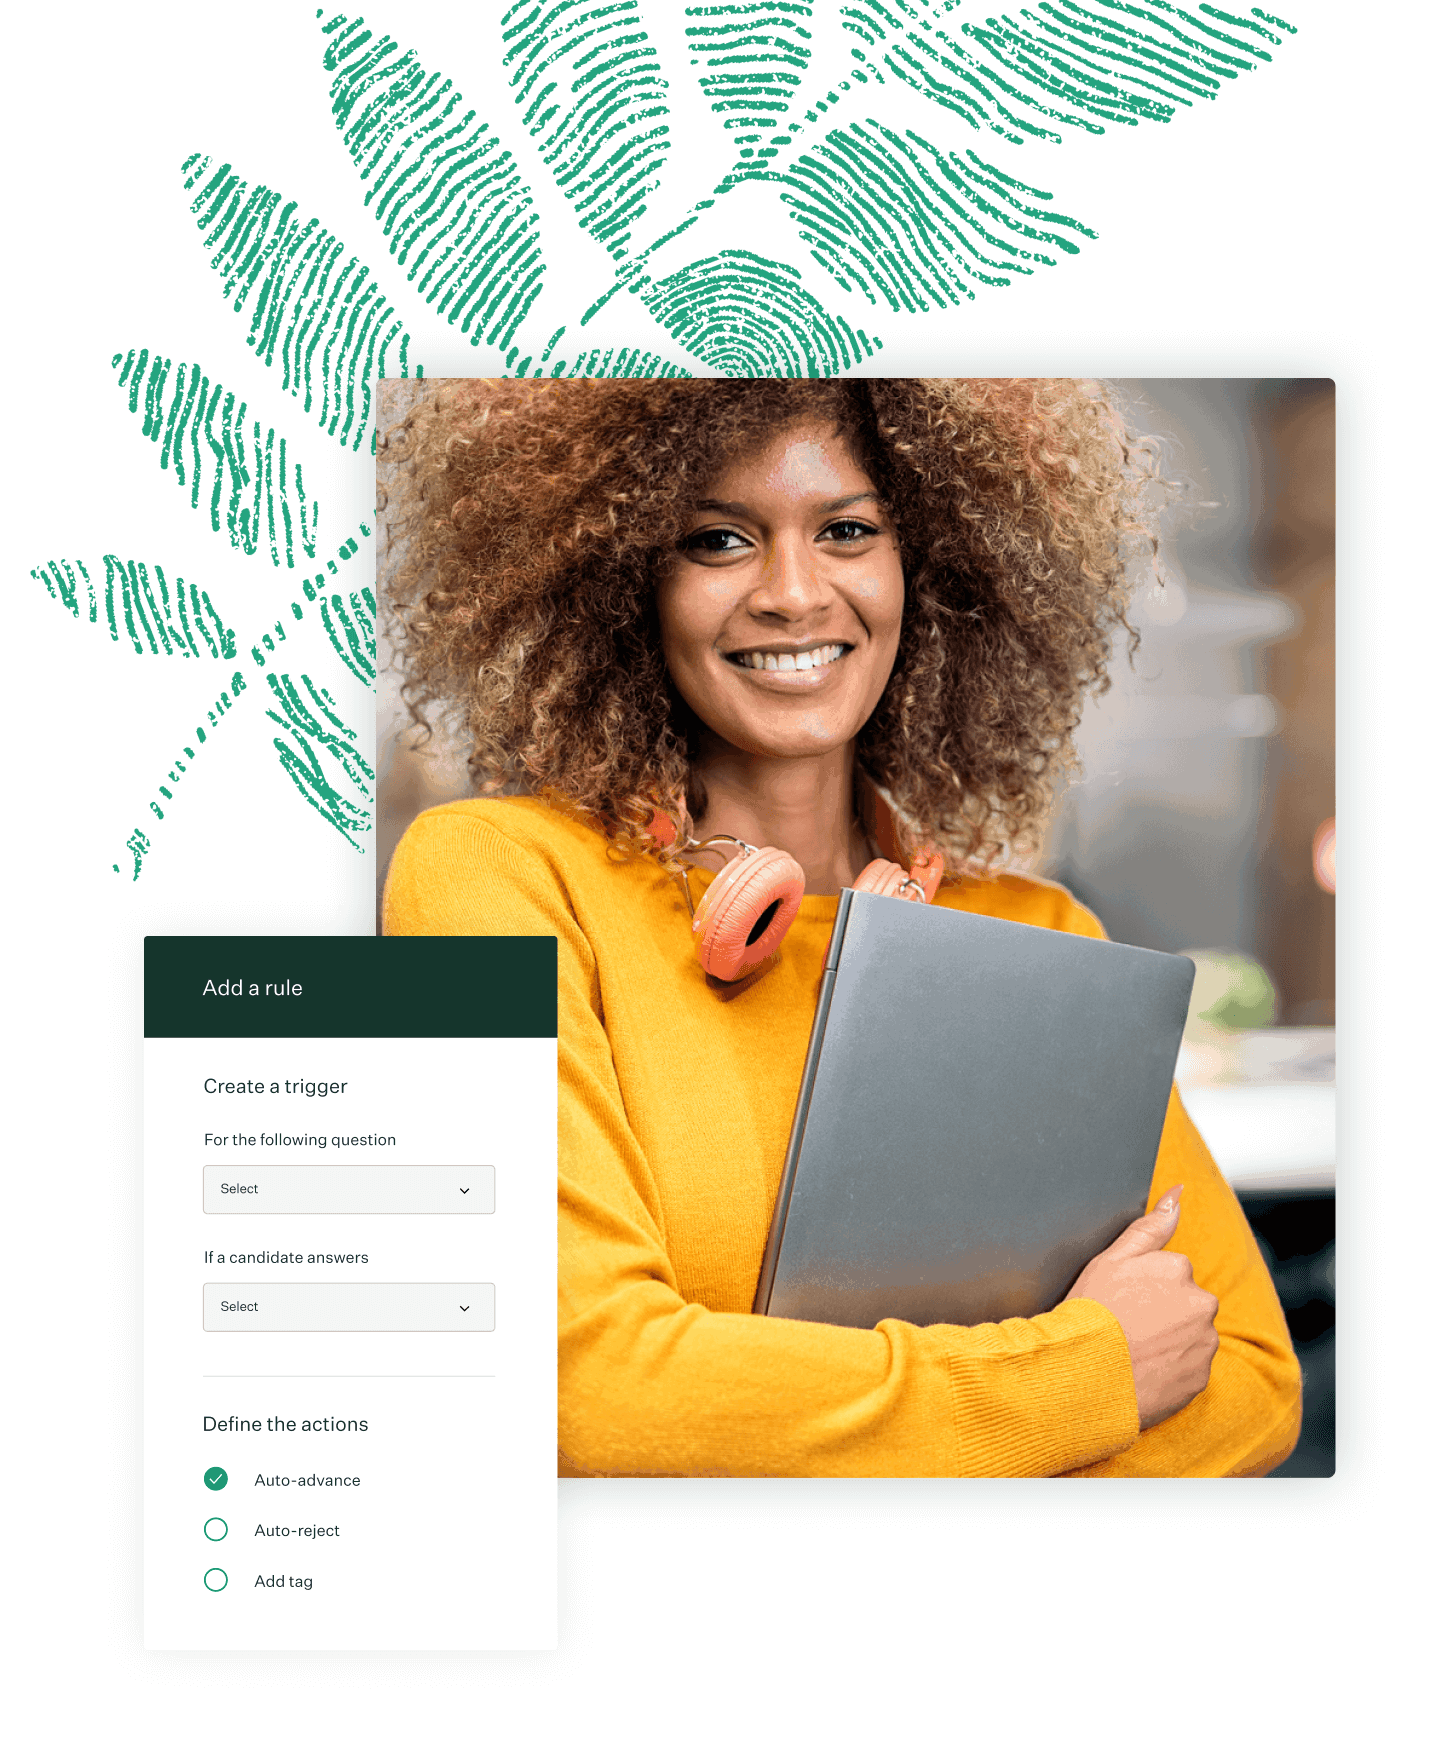 Image with Greenhouse product UI and a photo of a woman holding a laptop